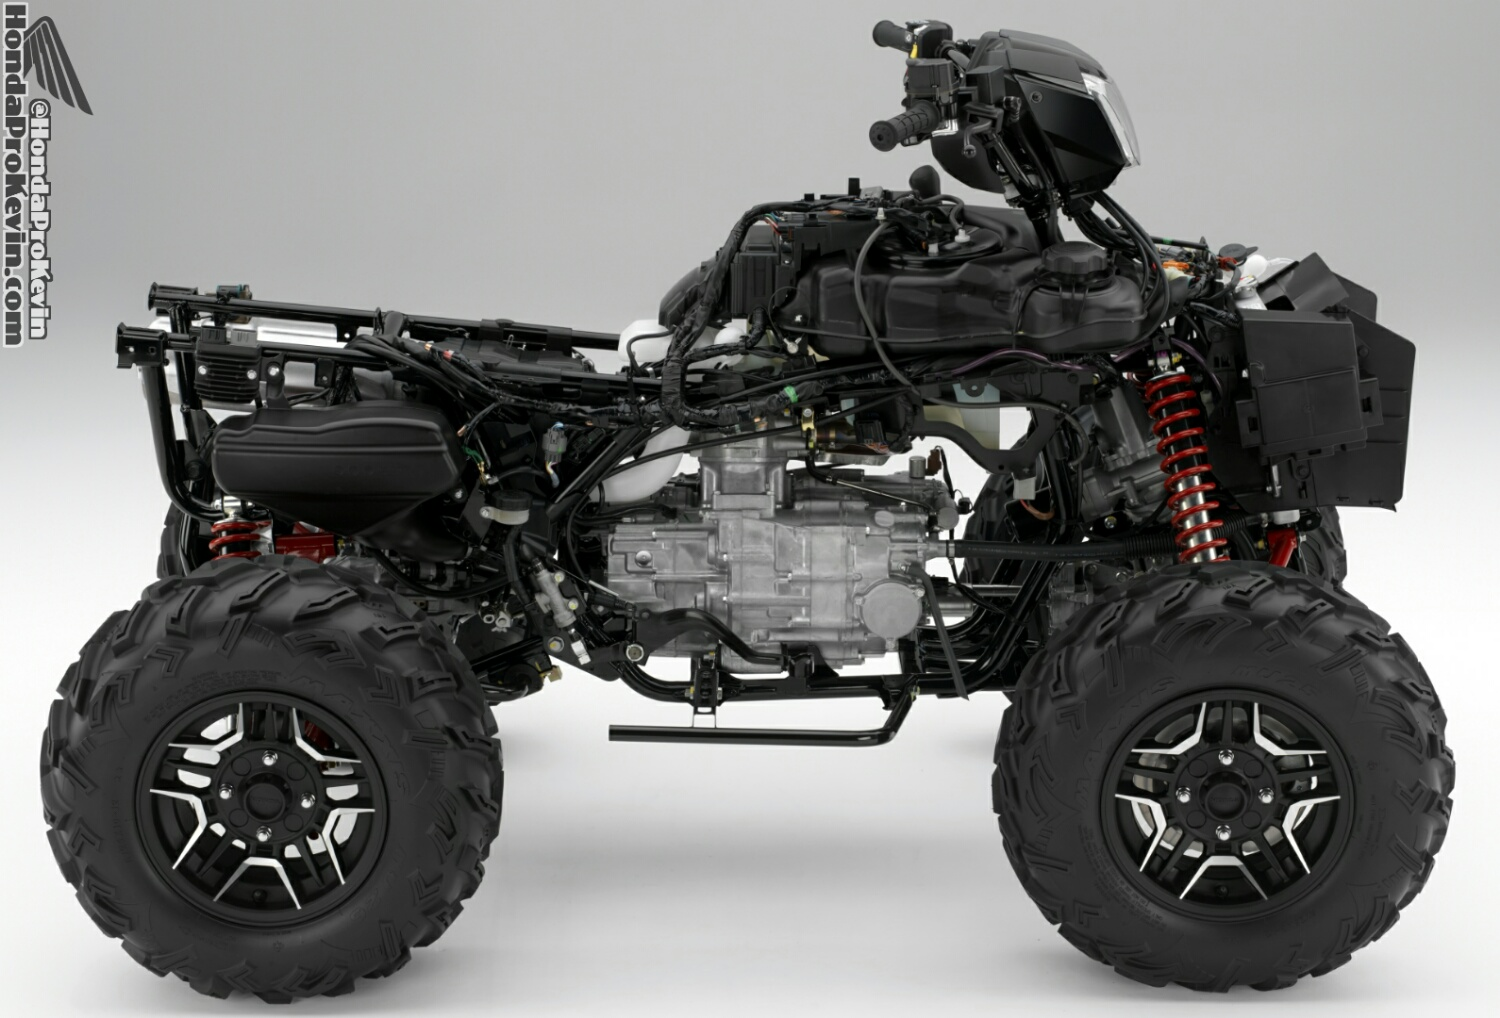 2016 Honda Rubicon 500 ATV Frame / Engine - Review / Specs / Price / HP & TQ Performance Rating